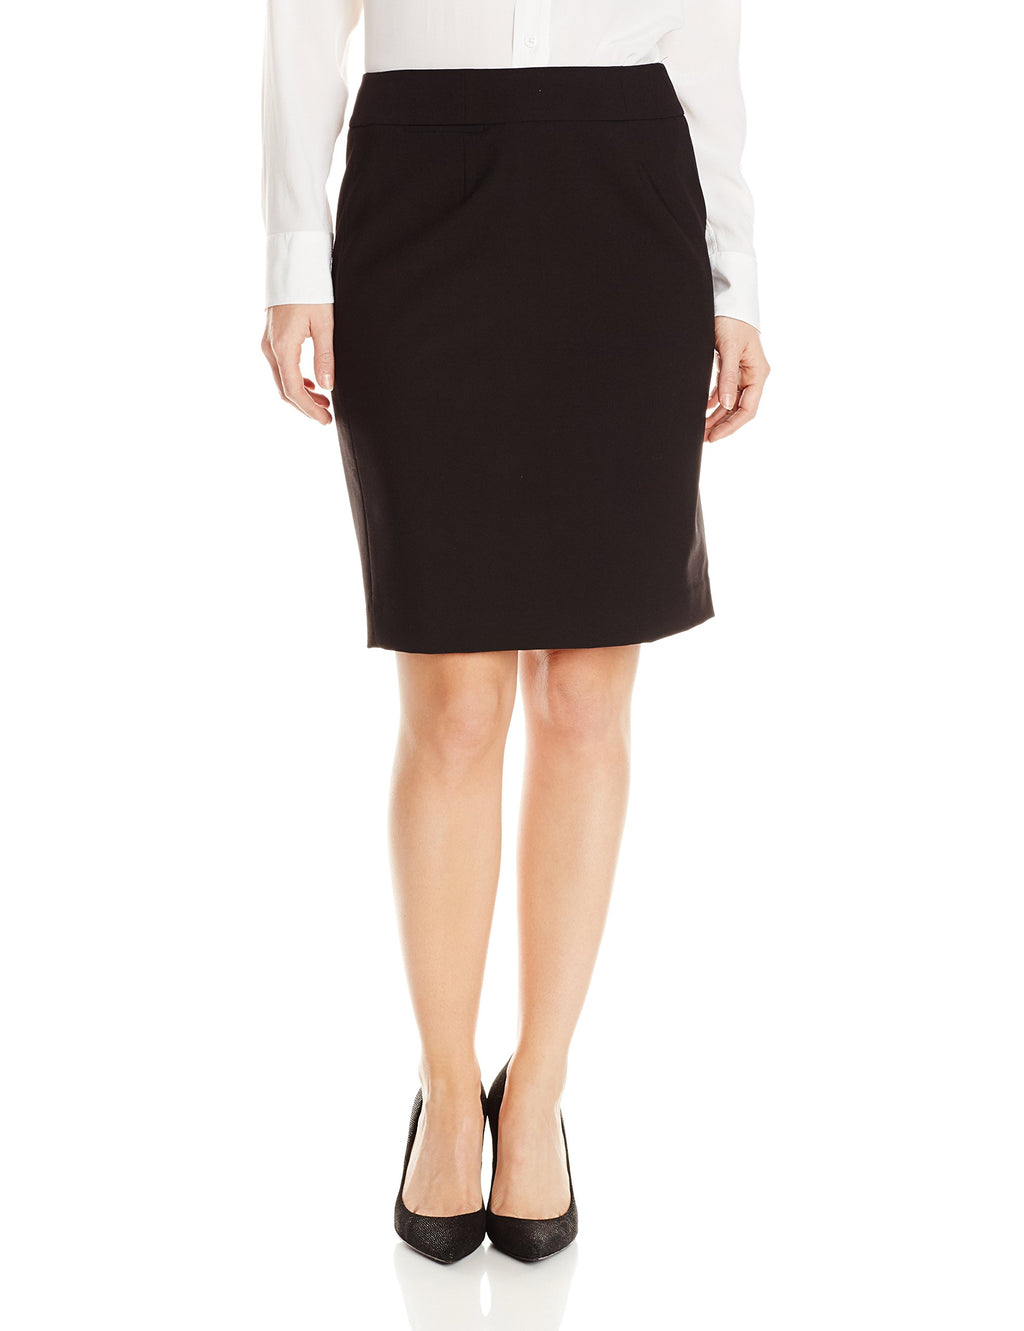 Calvin Klein Women's Petite Lux Straight Skirt, Black, 12